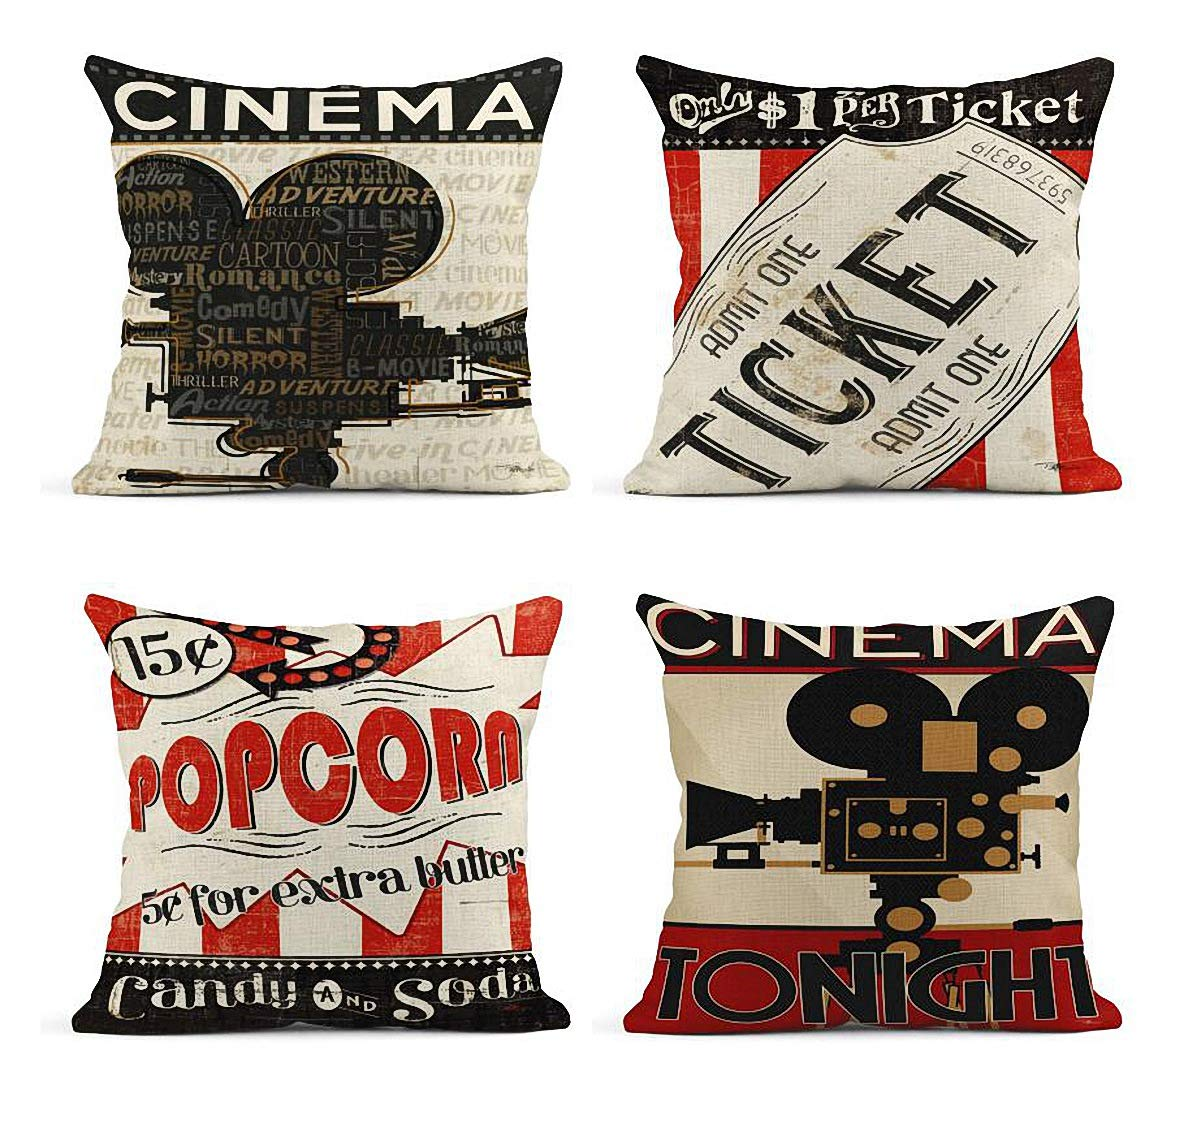 ArtSocket Set of 4 Linen Throw Pillow Covers Vintage Cinema Movie Theater Fresh Popcorn Projector Admit One Decorative Pillow Cases Home Decor Square 18x18 inches Pillowcases